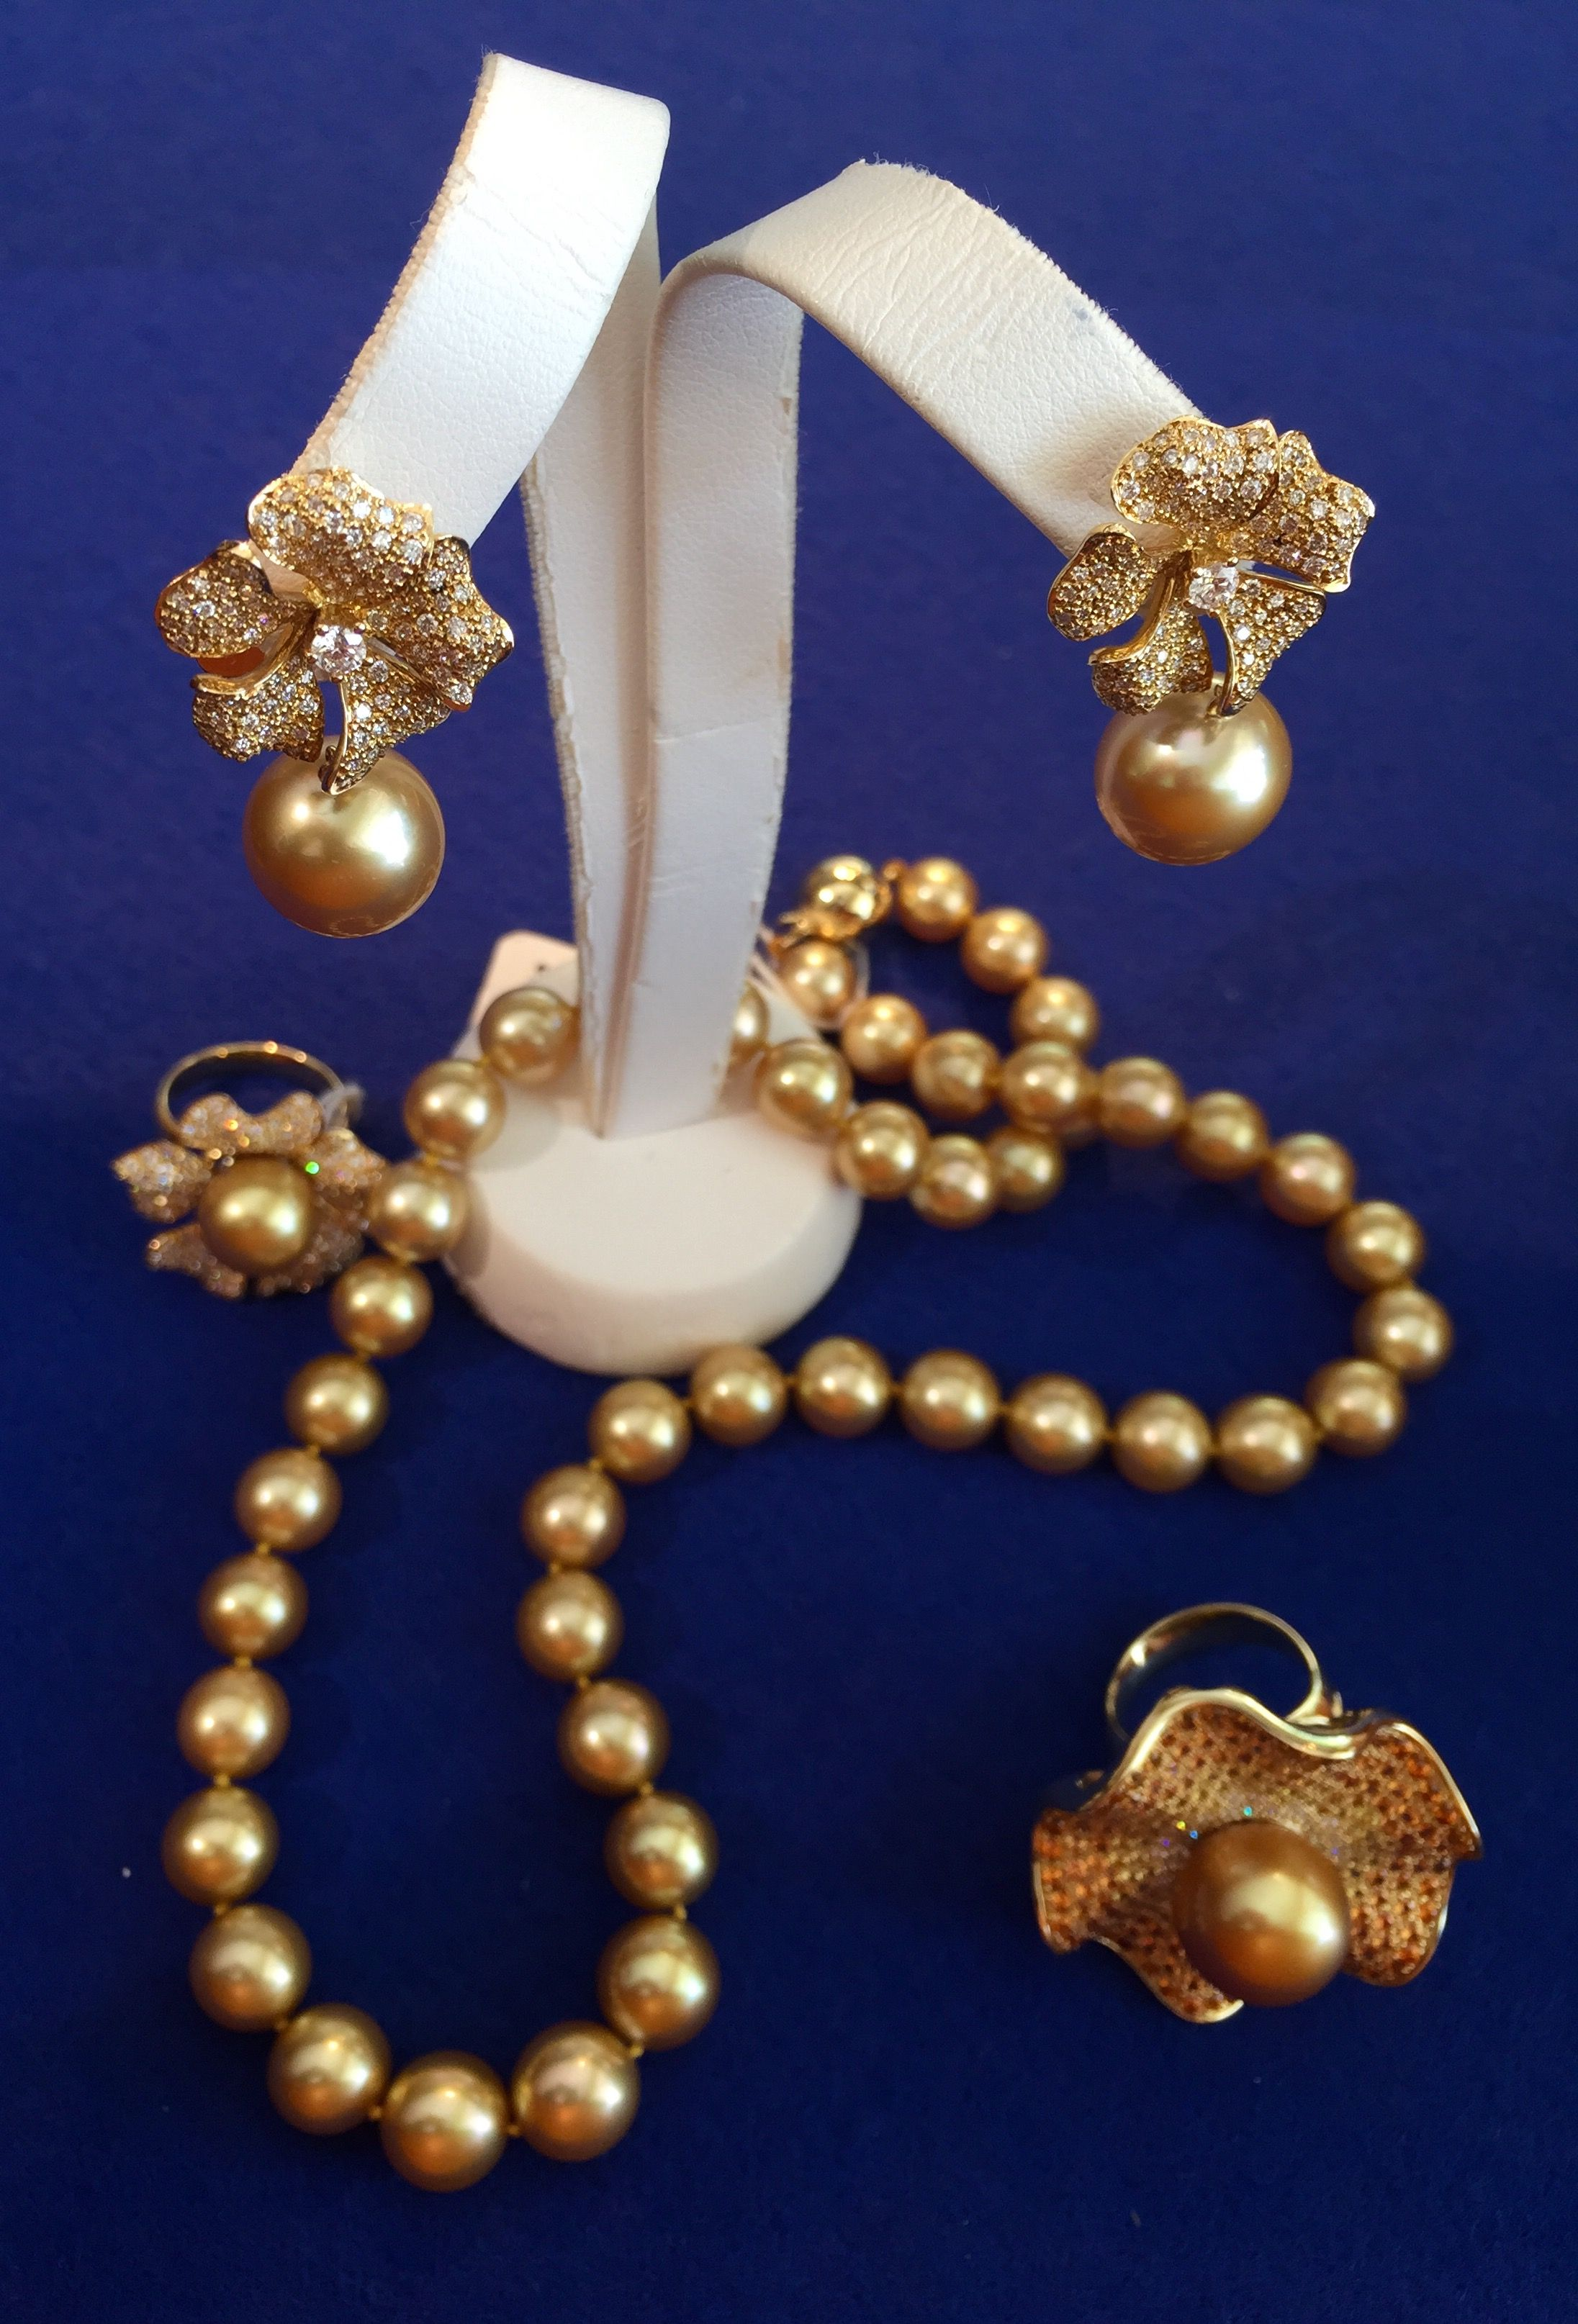 740db3058 Assortment of fine South Sea golden pearl jewelry by Jewelmer, Philippines.